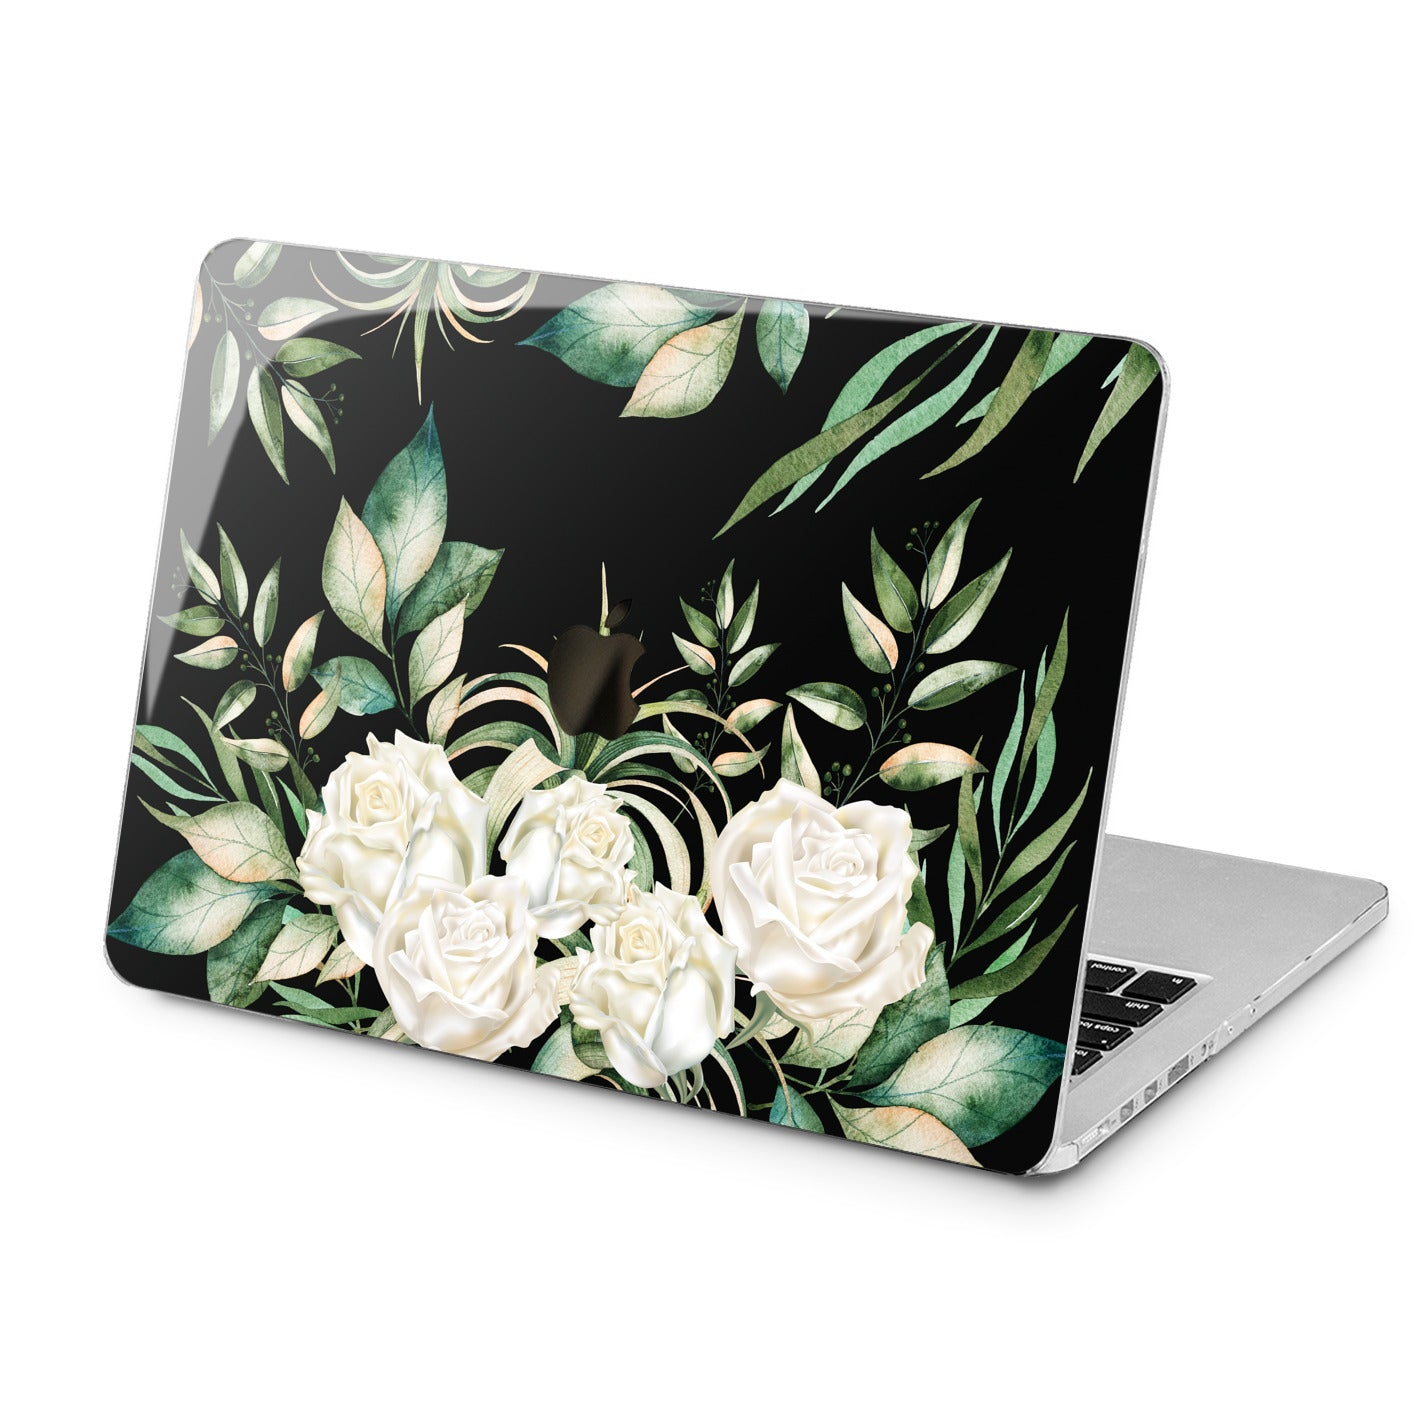 Lex Altern Lex Altern Beautiful White Roses Case for your Laptop Apple Macbook.